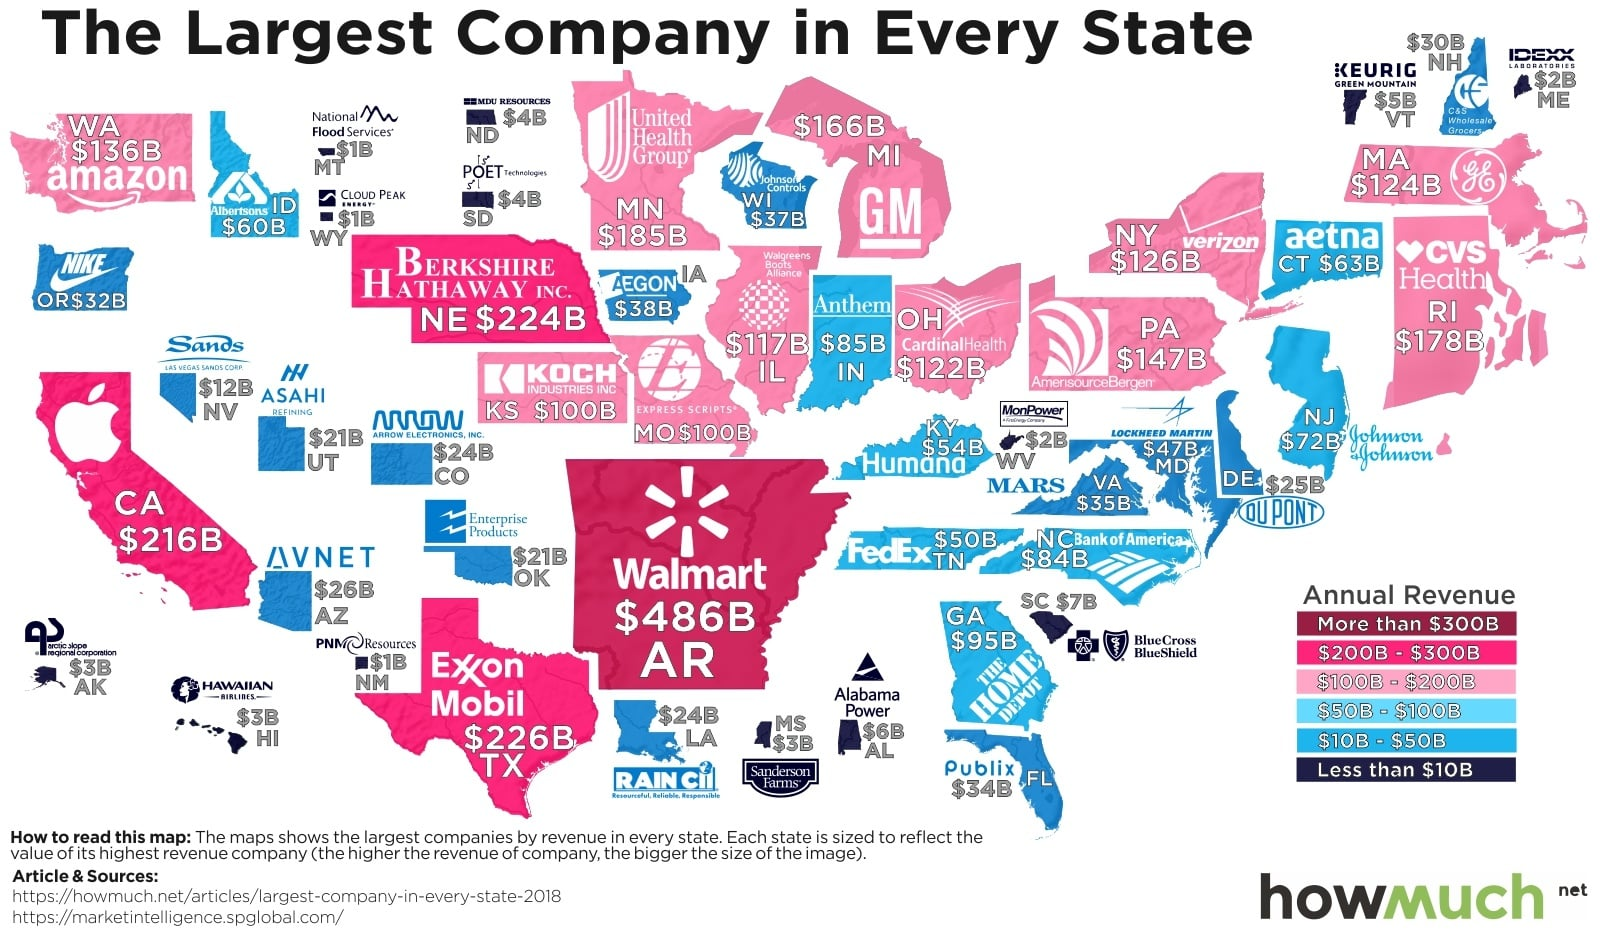 Largest Company By Revenue Headquartered In Every State